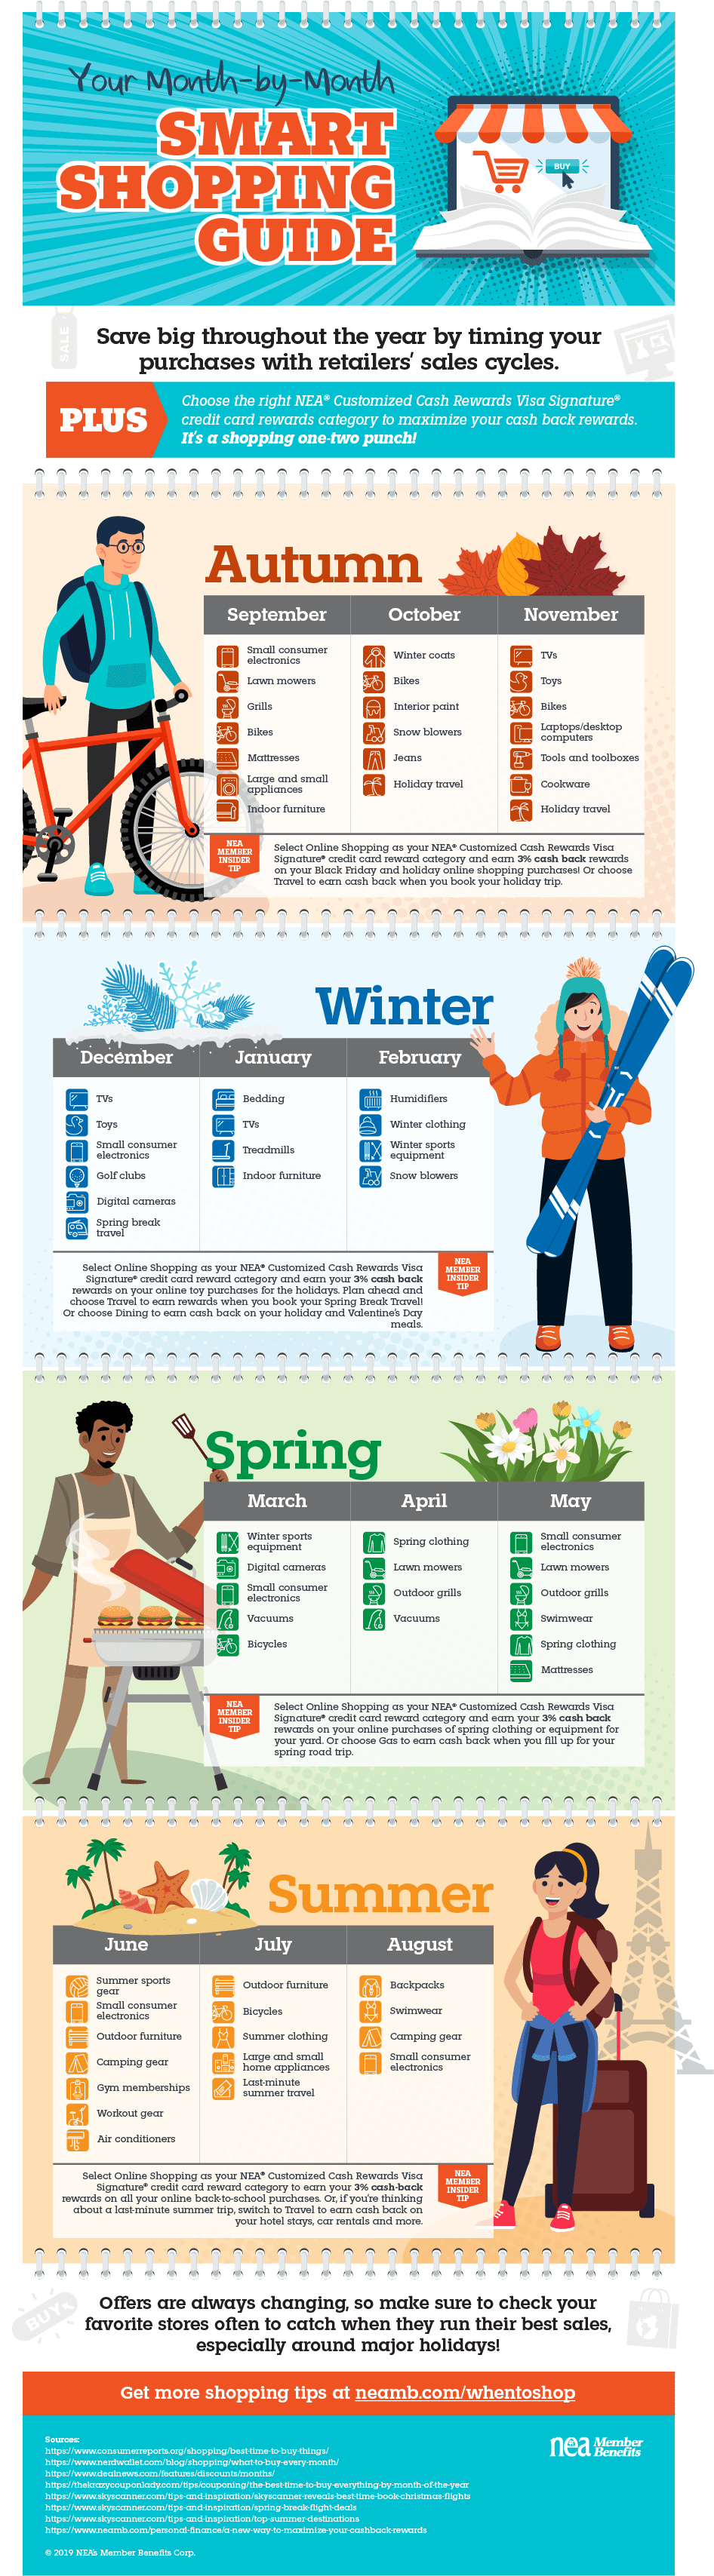 Your Month-by-Month Smart Shopping Guide Infographic